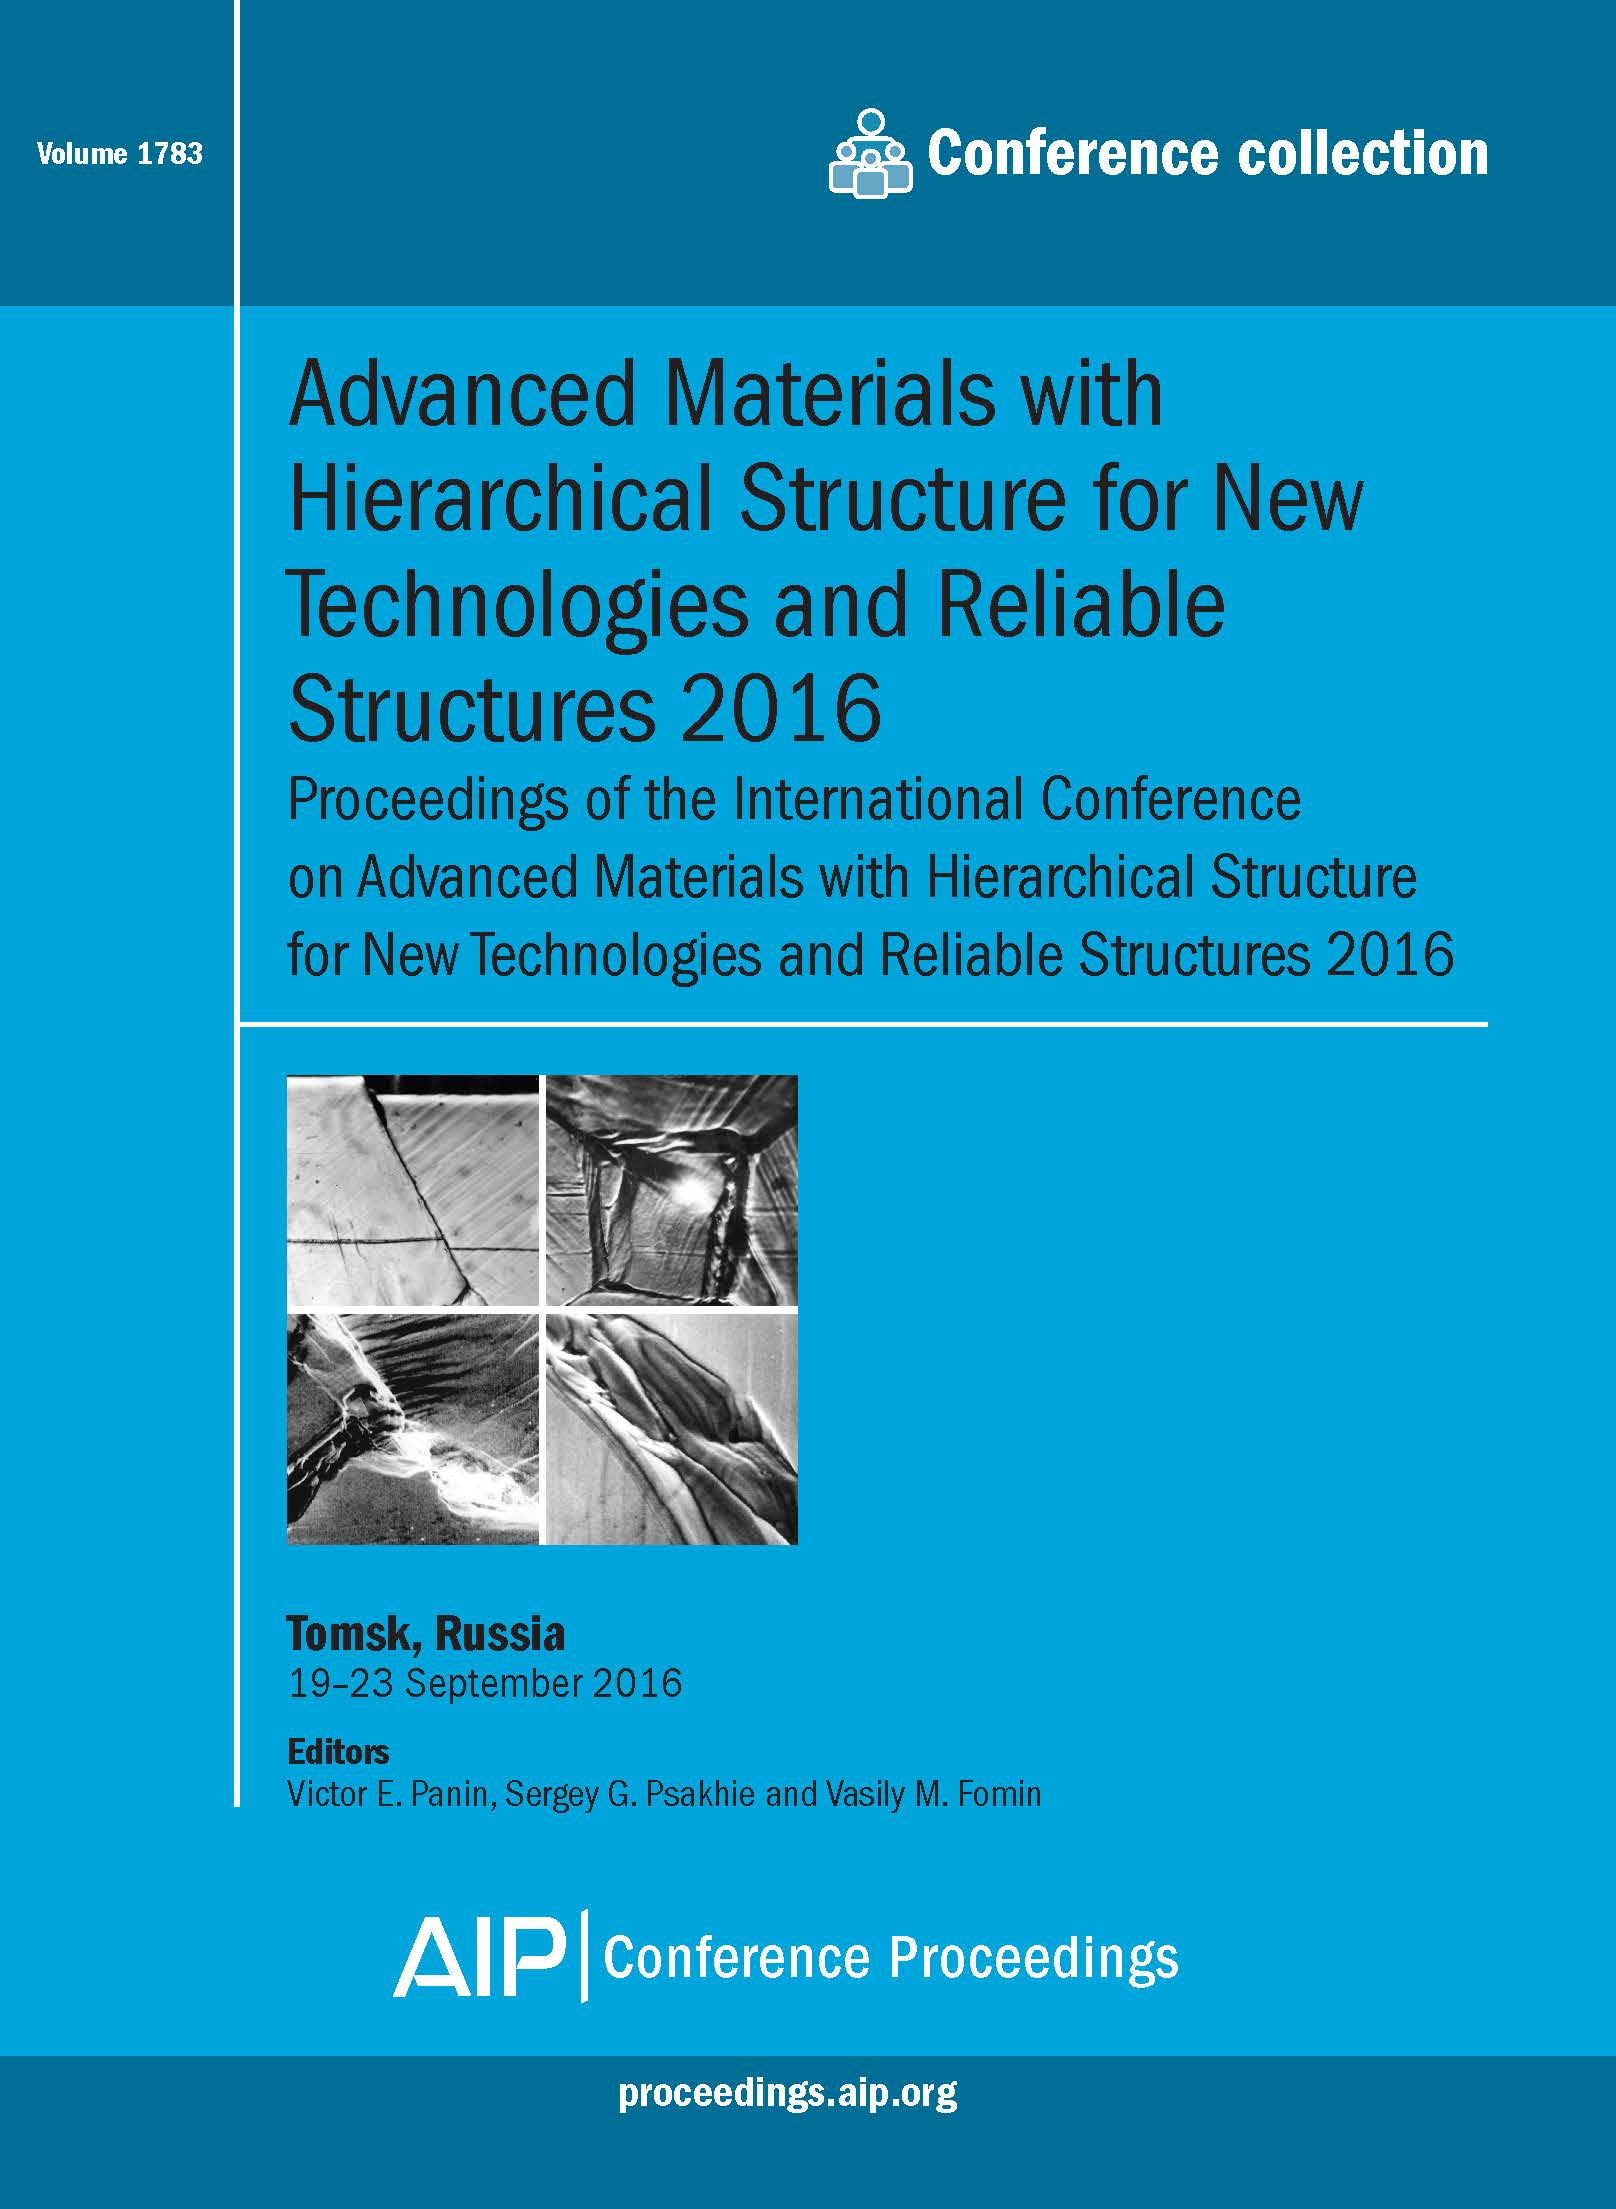 Volume 1783: Advanced Materials with Hierarchical Structure for New